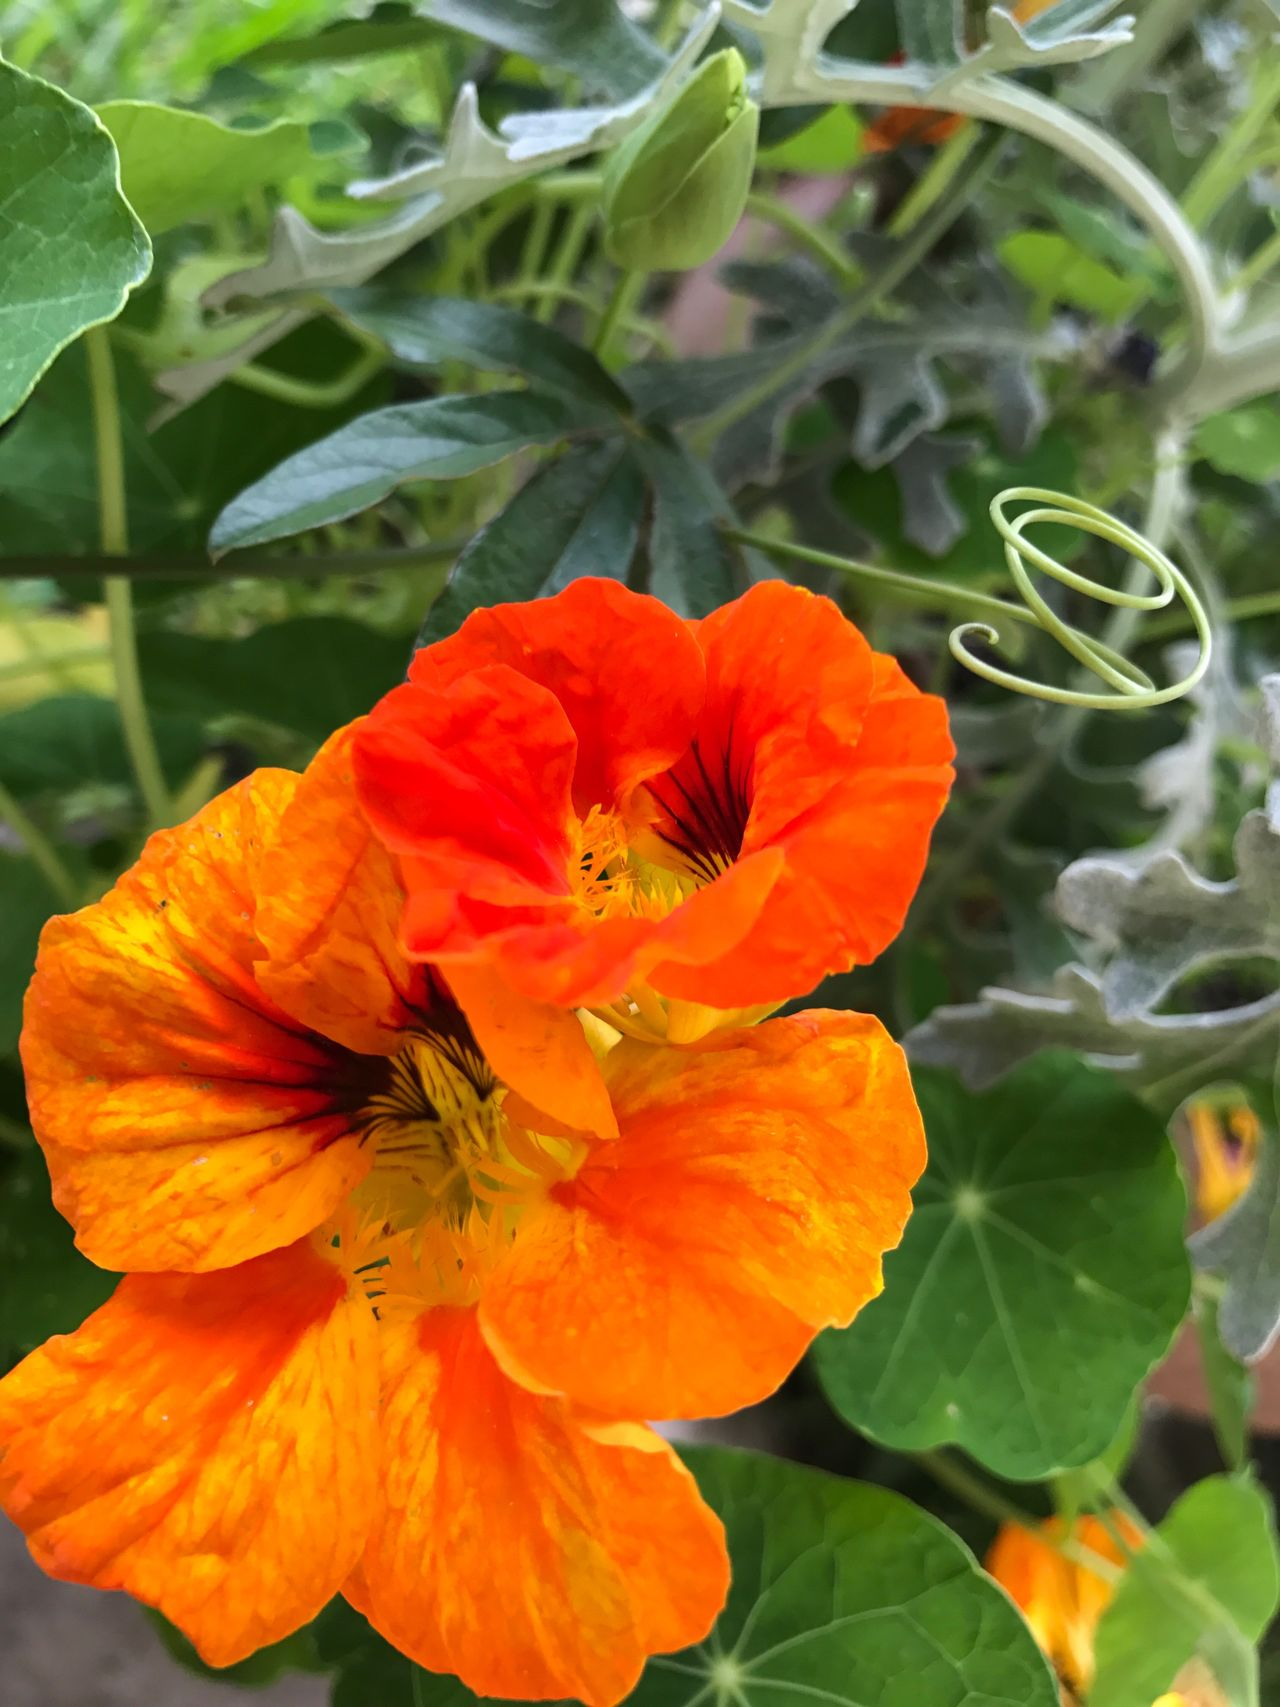 Bright Colors Nasturtium Flower Growth Nature Fragility Plant Petal Blooming Beauty In Nature Freshness Flower Head Close-up Stamen No People Outdoors Day Tendril Swirly Swirl Yellow Orange Green Color Whirl Dusty Miller